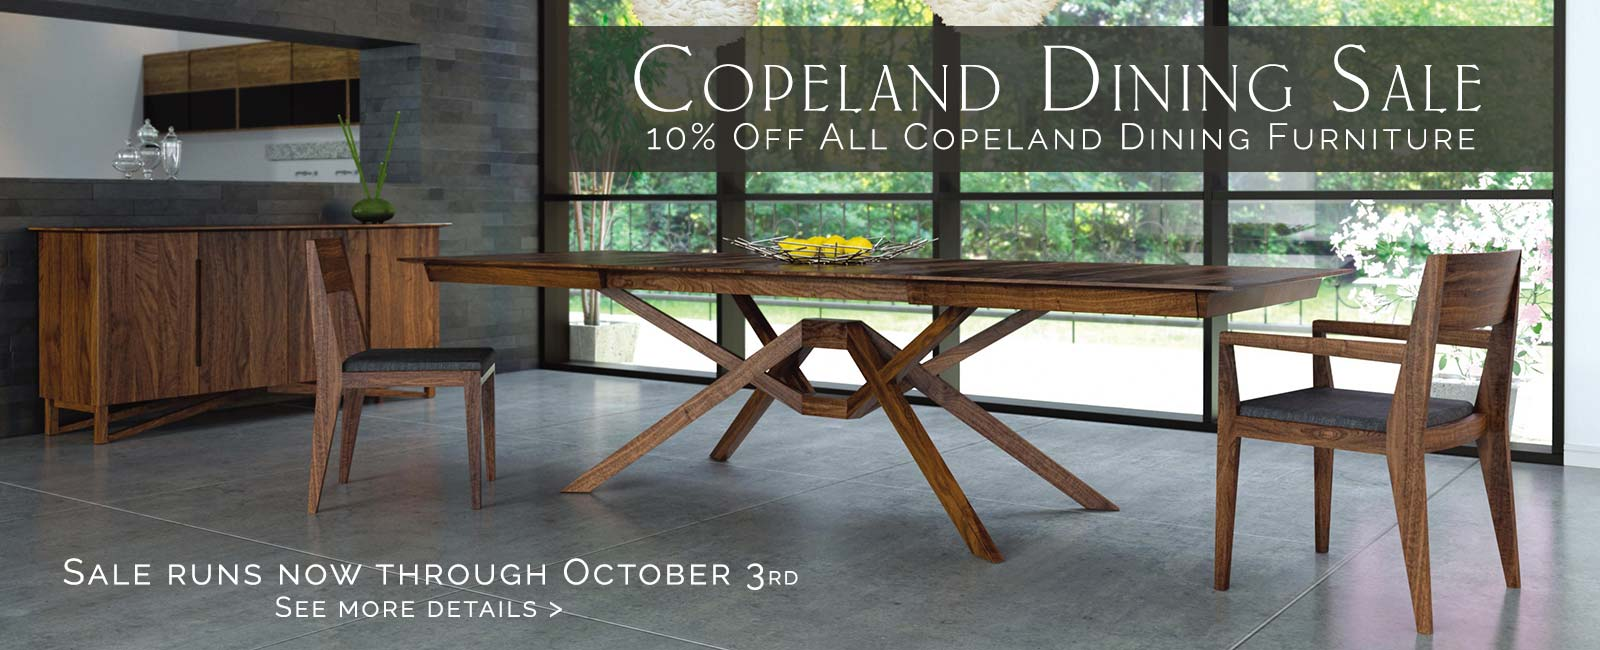 Copeland Fall Dining Sale